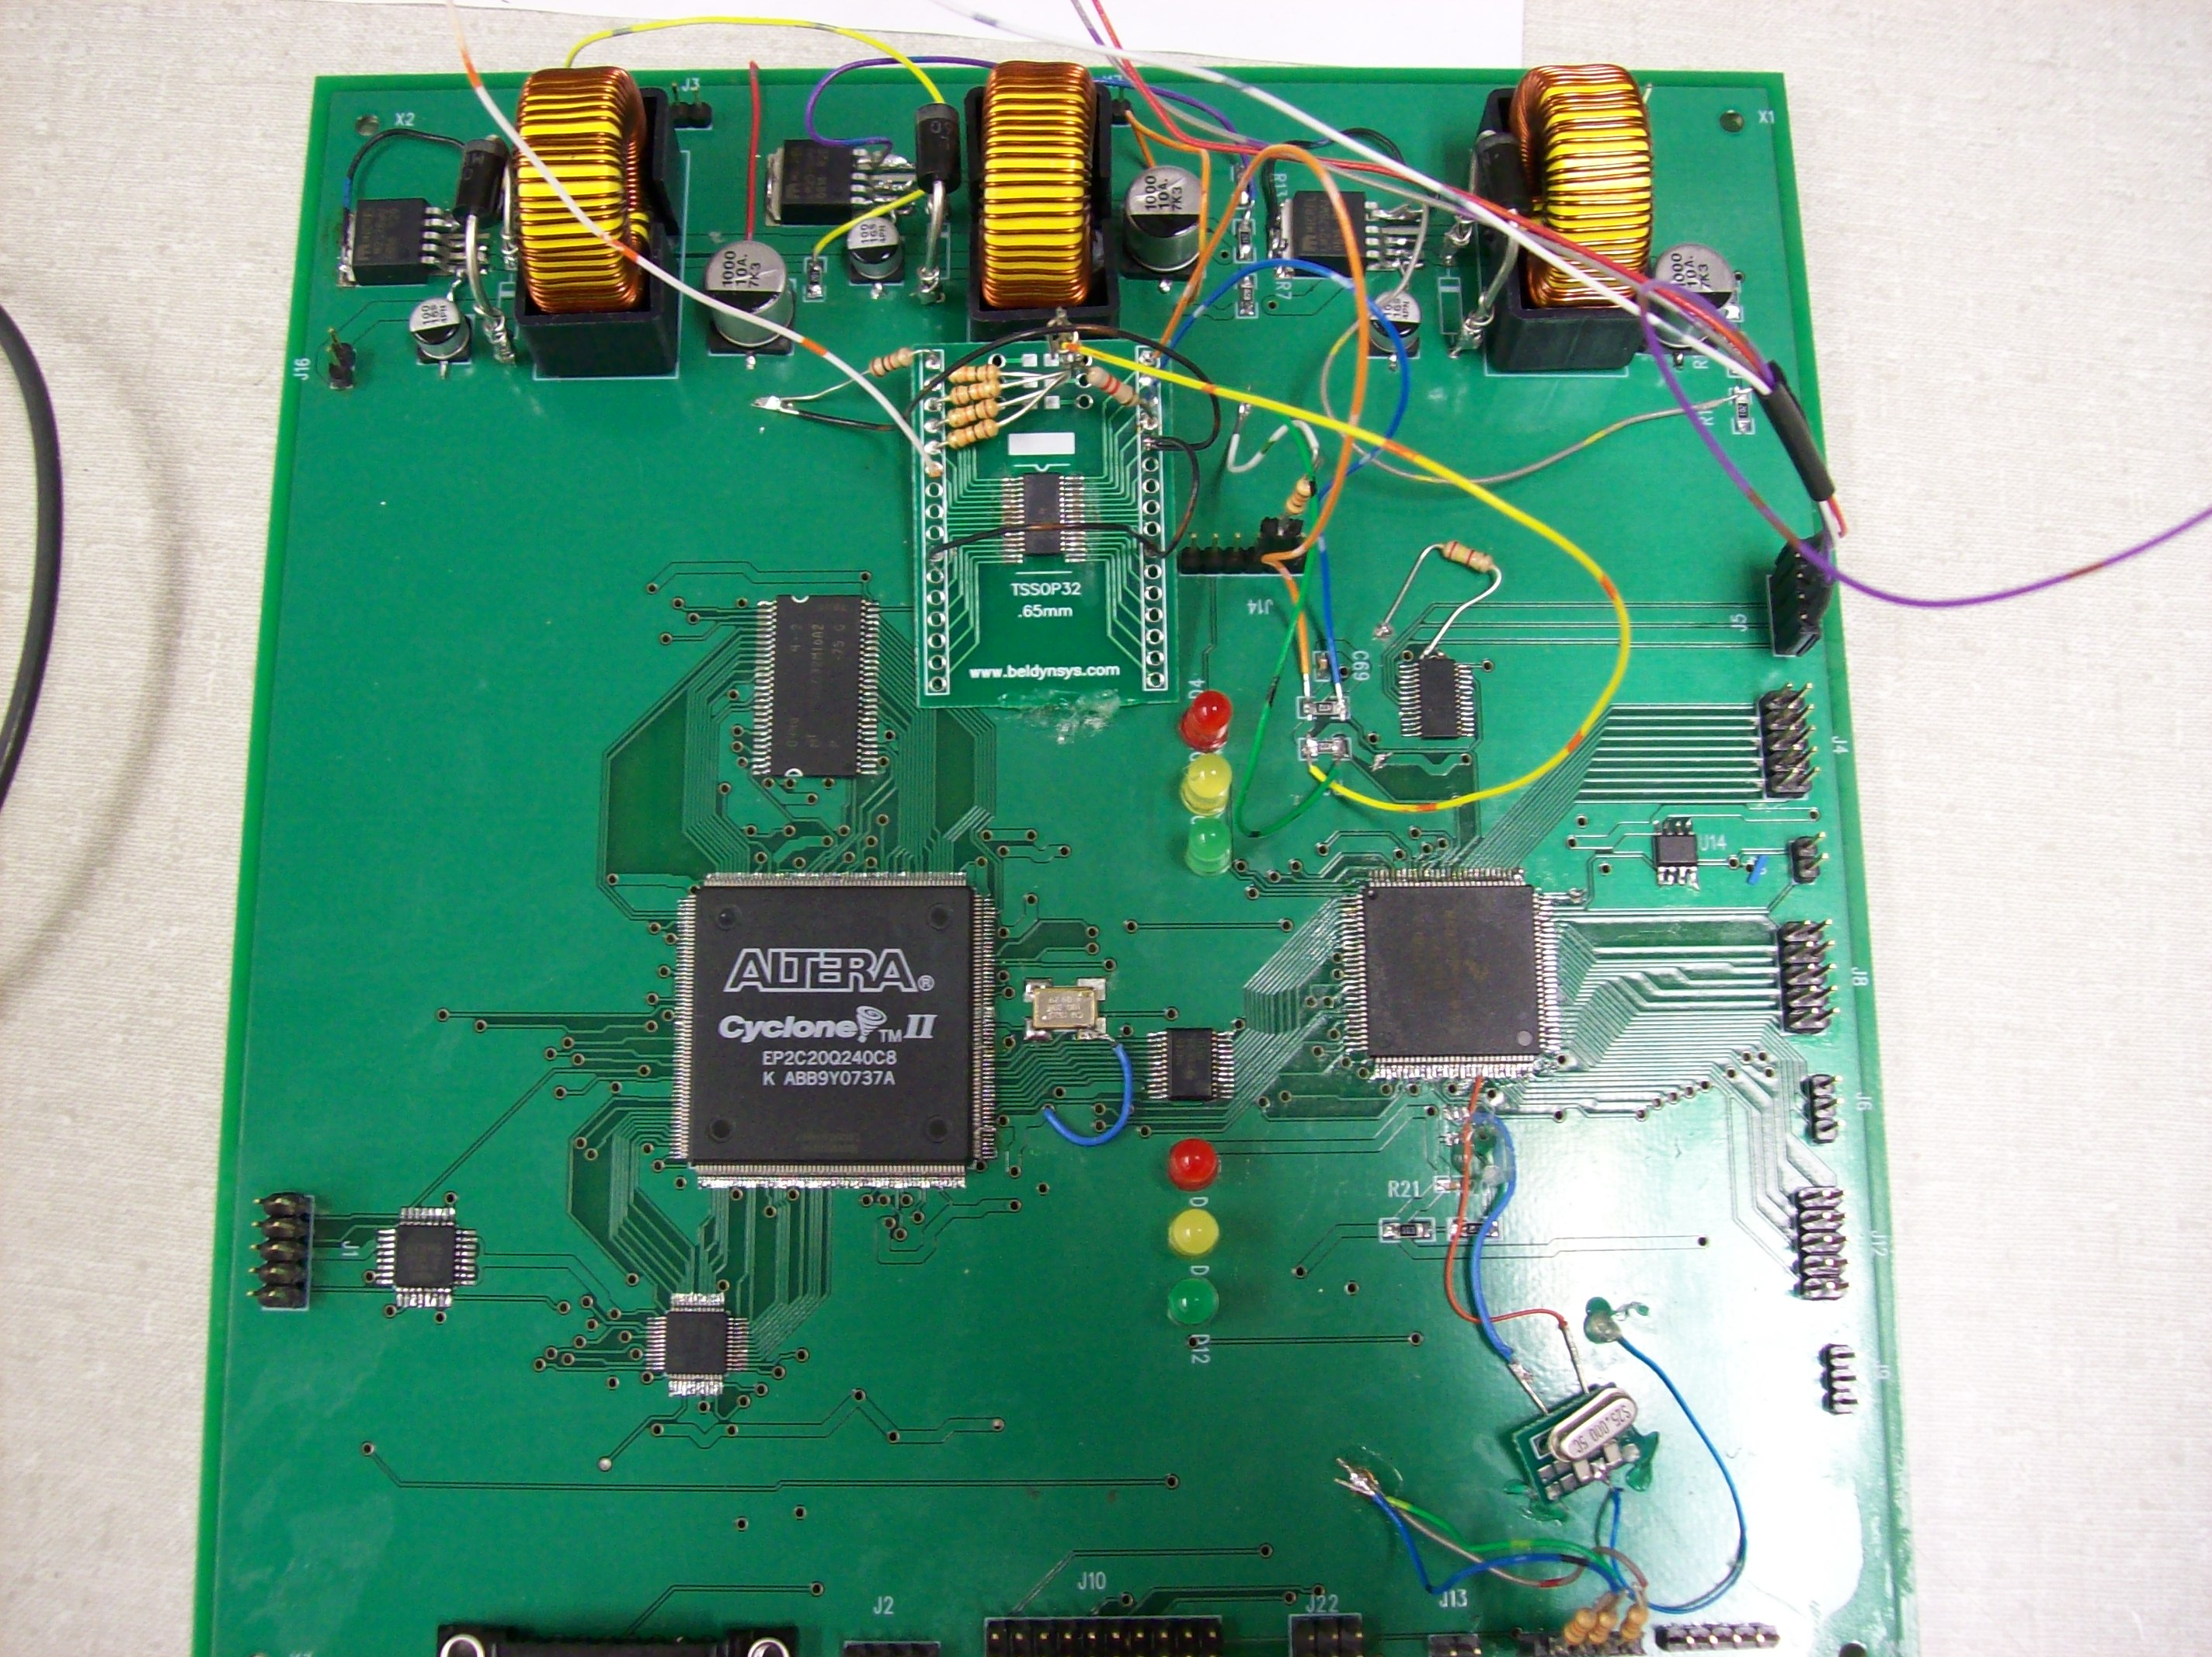 Josh Longs Lab Notebook Electronics Mini Projects Circuit Then Connected The Pcb To Large We Were Unable Communicate Both Led Drivers At Same Time Though When Tried Test Out New